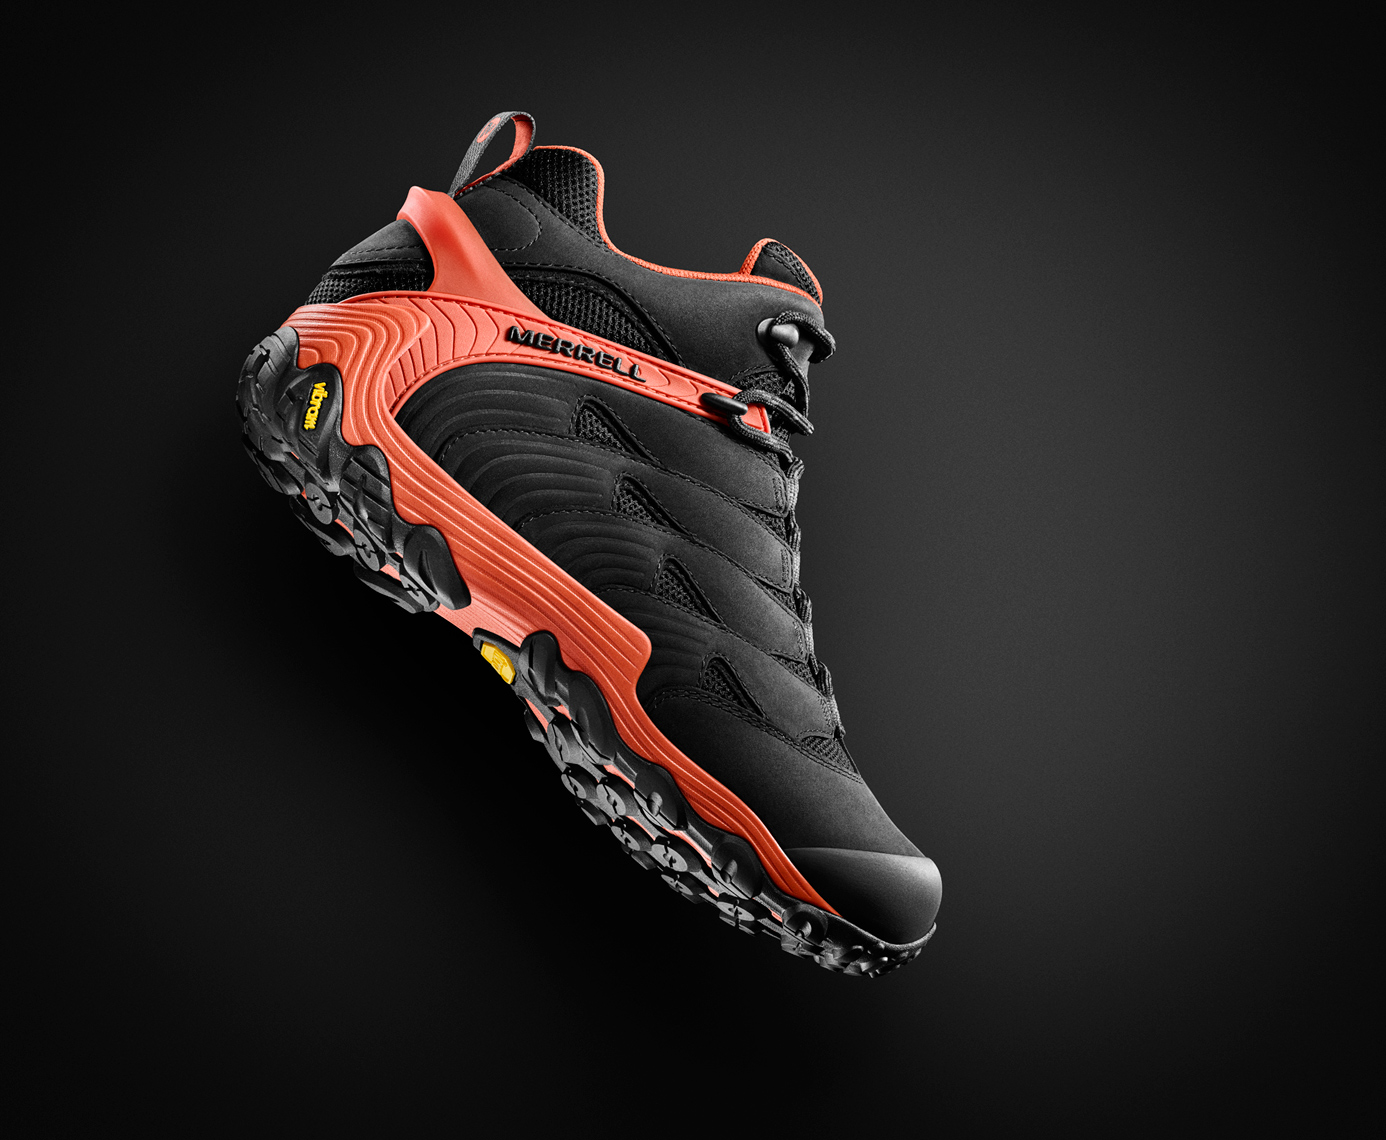 Merrell Chameleon boot floating on black background